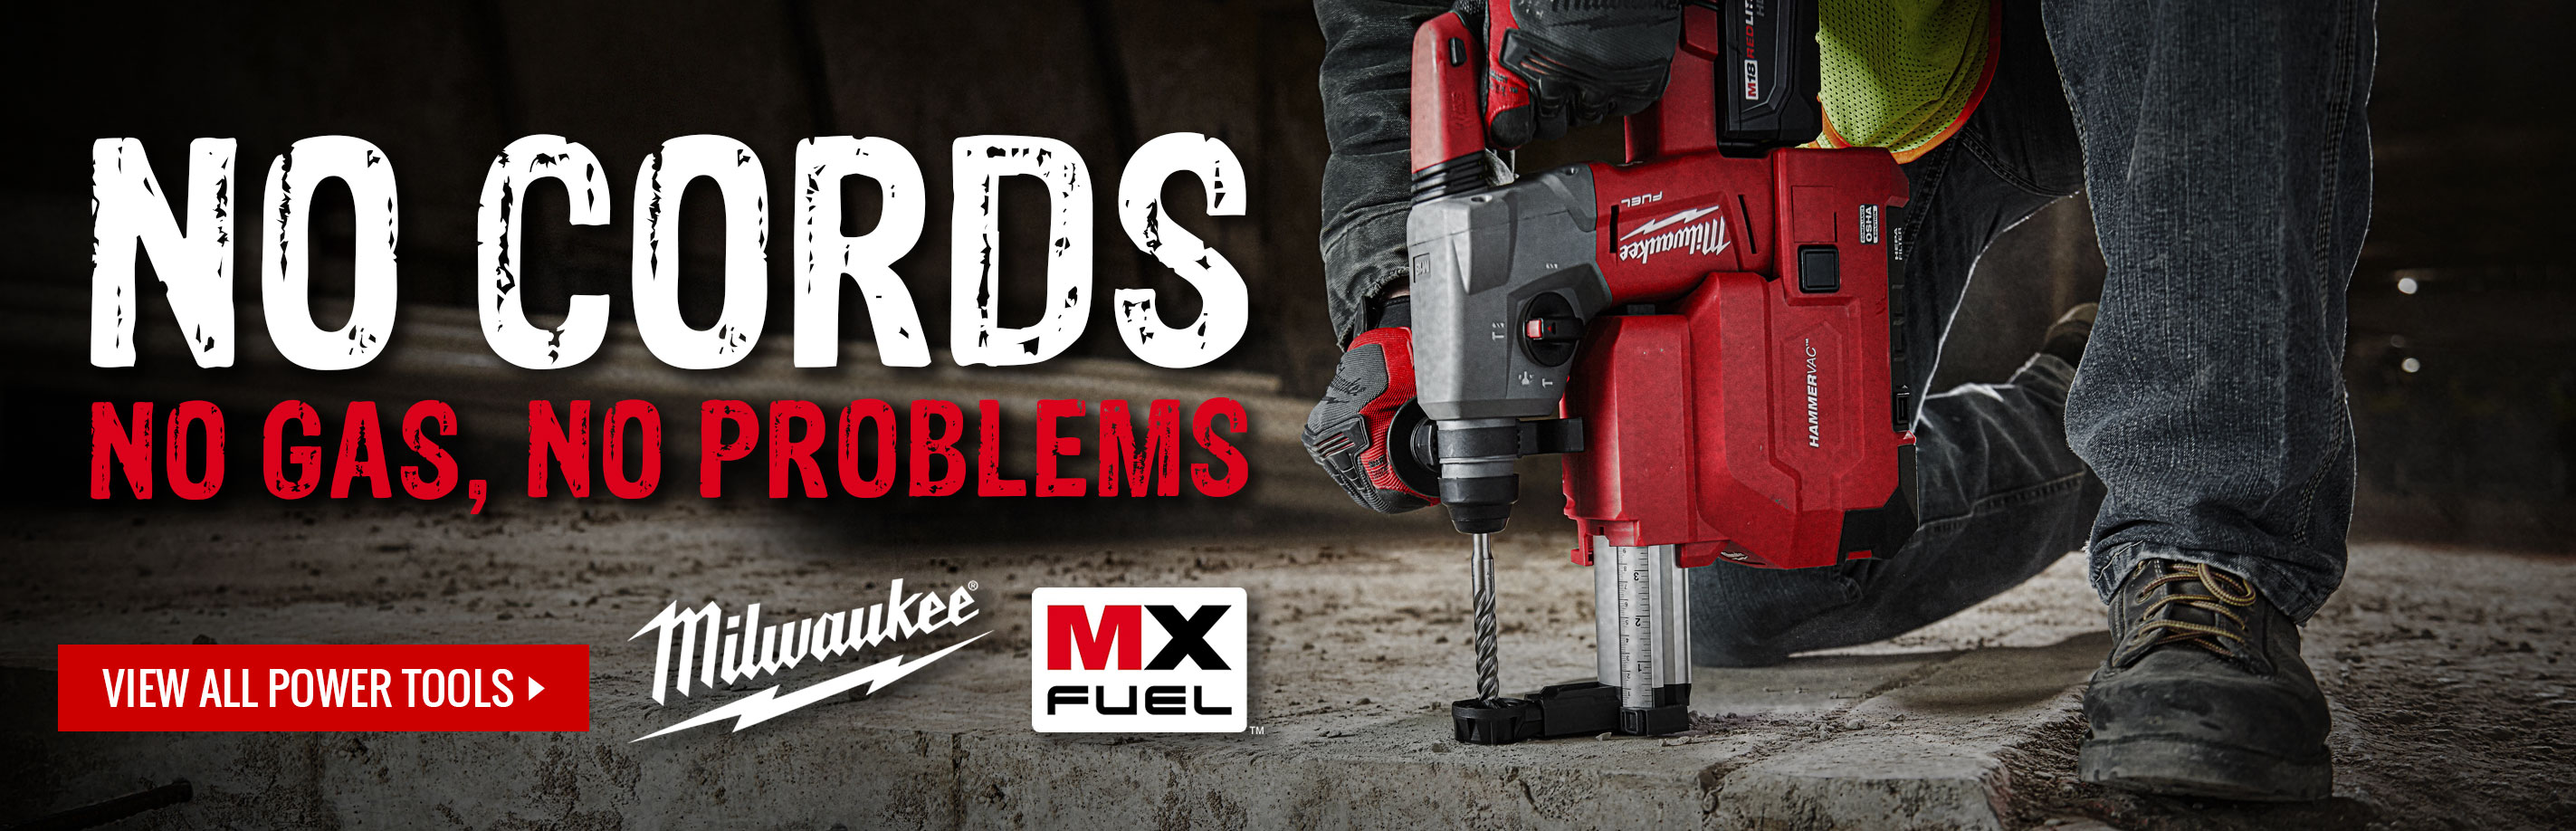 Find the all-new Milwaukee MX FUEL Power Tools at GME Supply